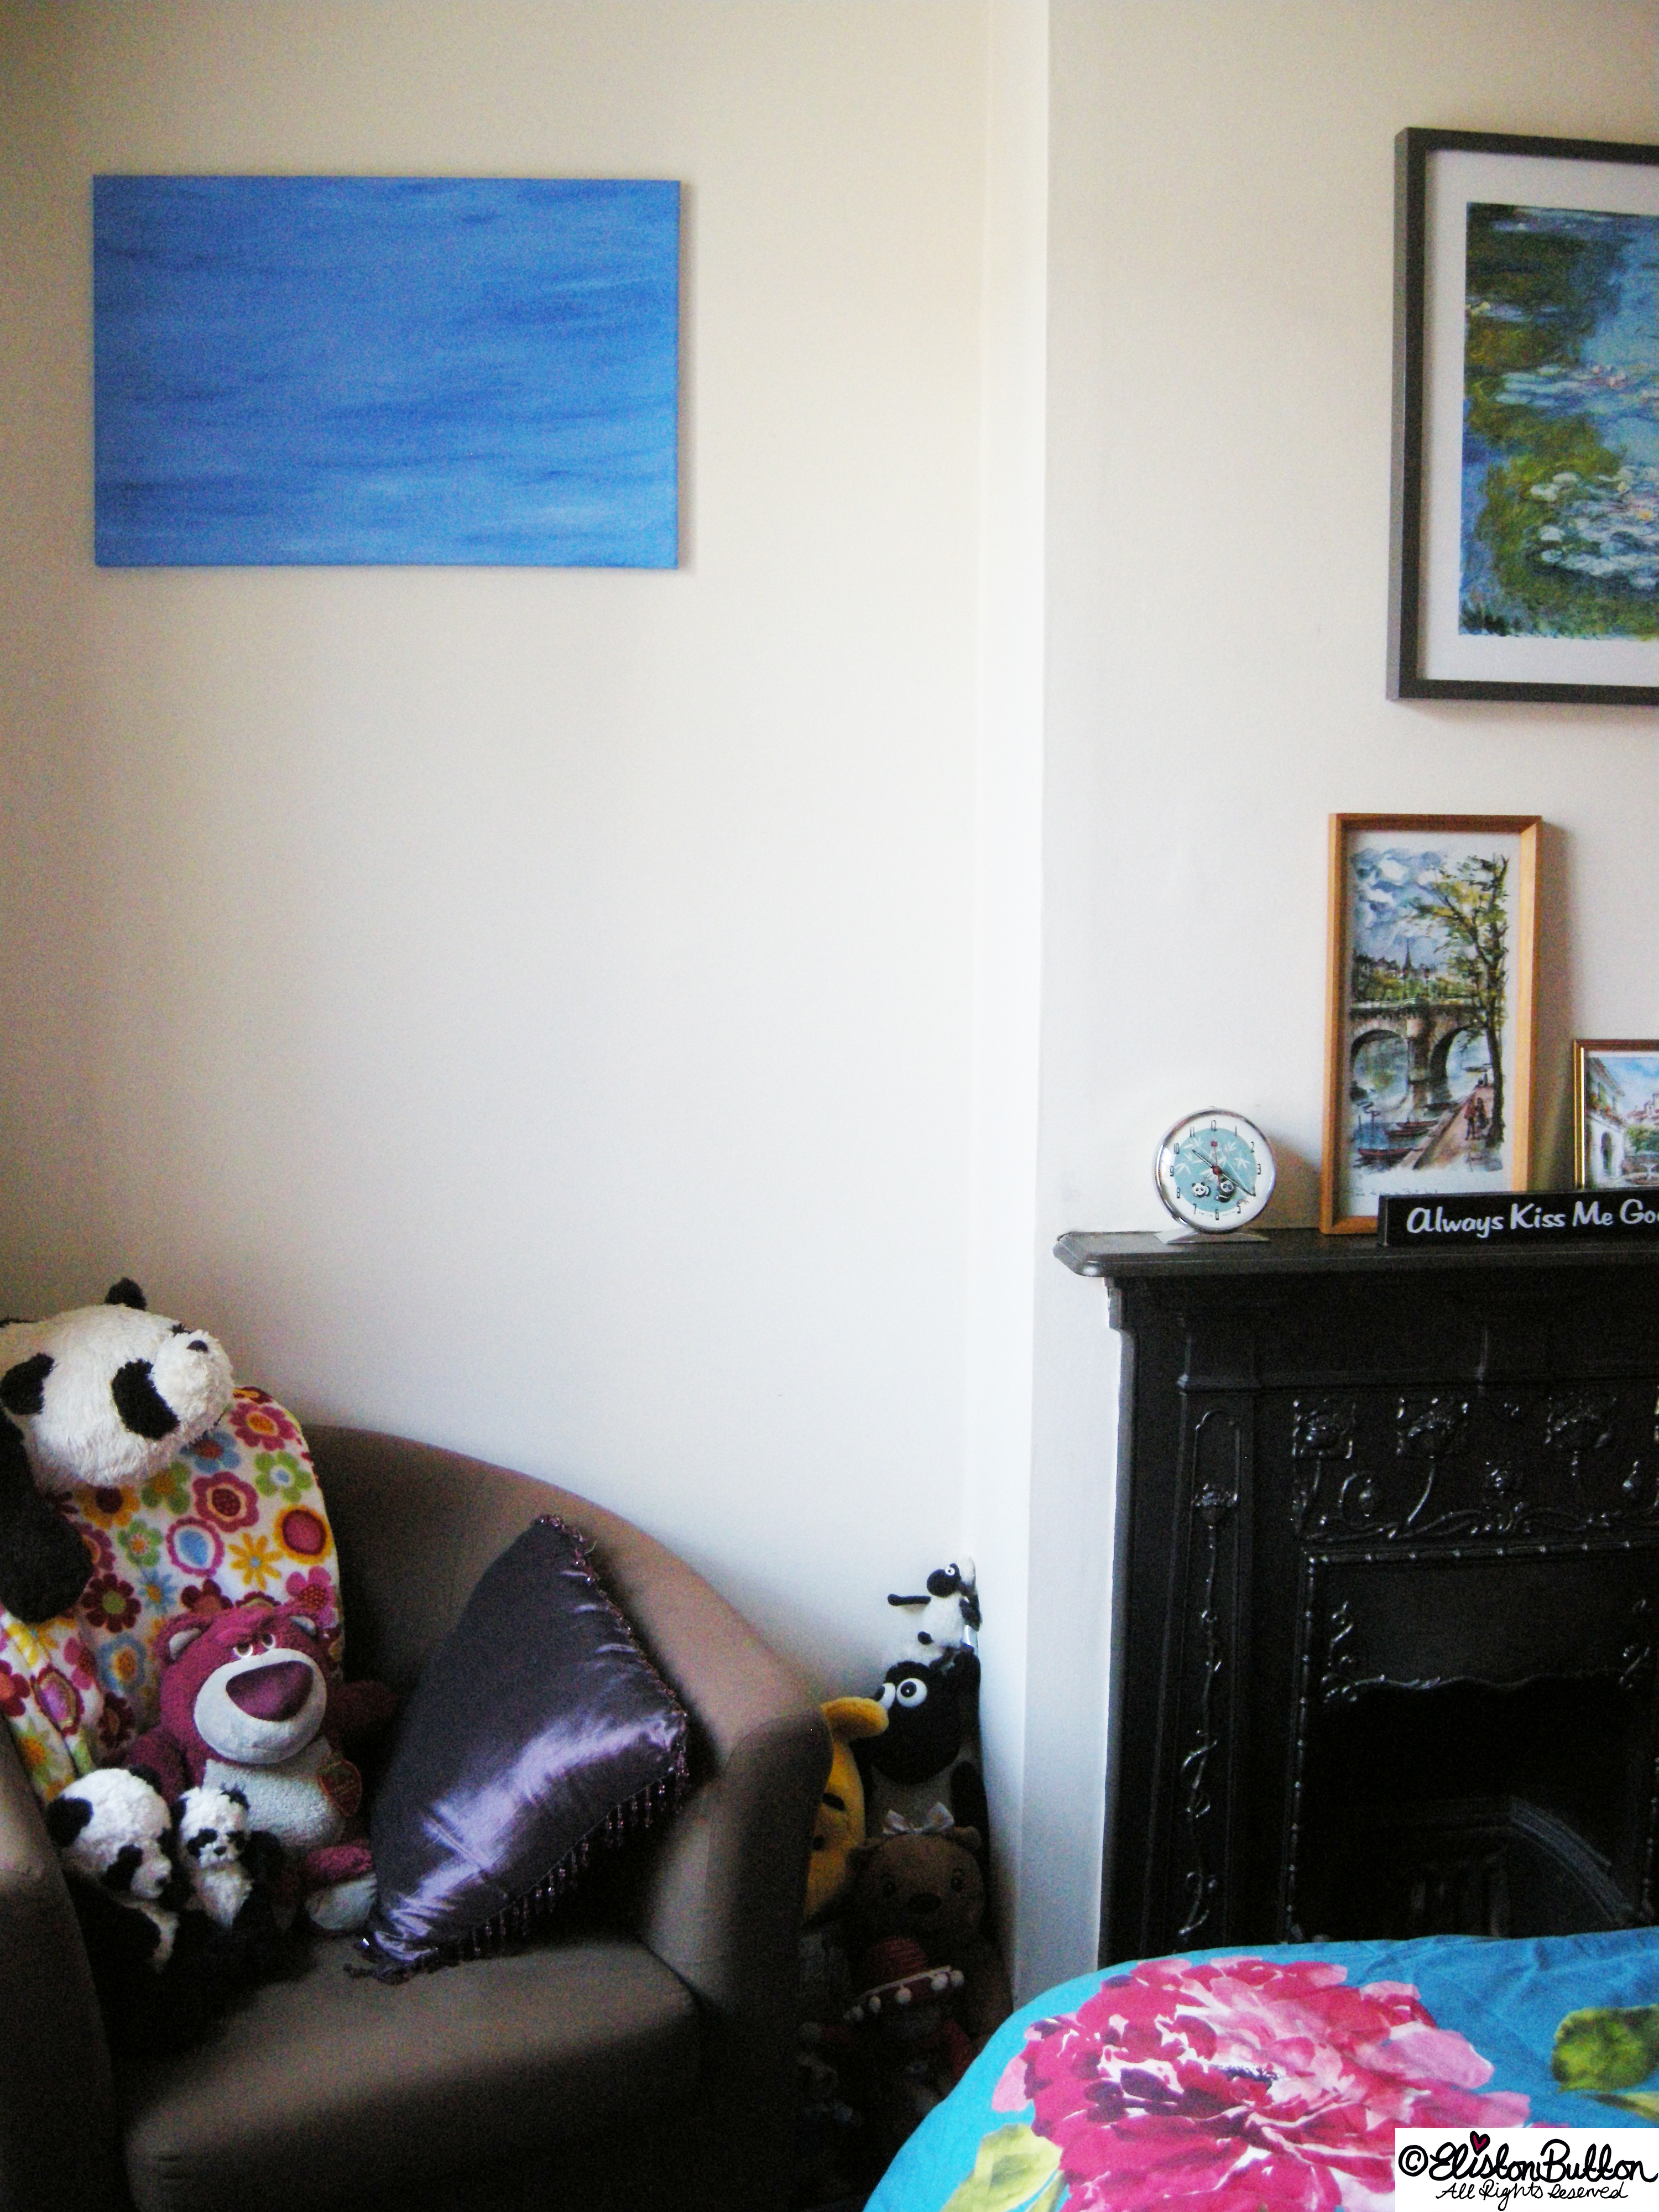 A Cosy Bedroom Corner - Workspace Wednesday - Bedroom Makeover at www.elistonbutton.com - Eliston Button - That Crafty Kid – Art, Design, Craft & Adventure.